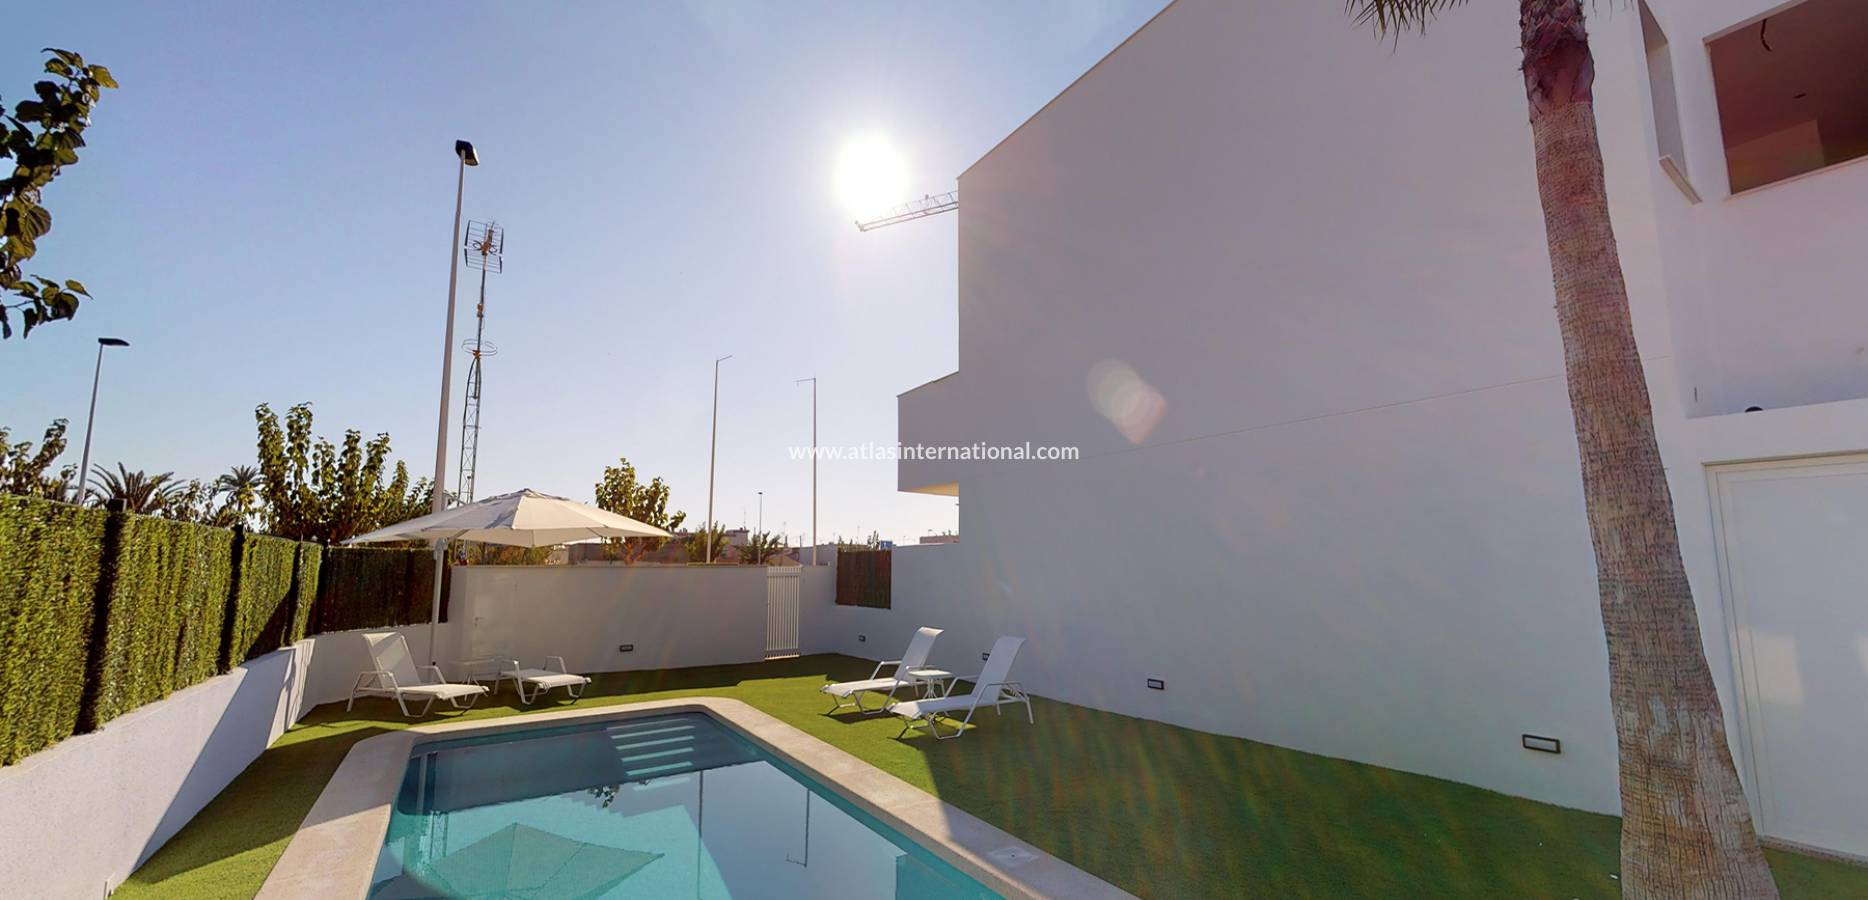 New Build - Duplex - San pedro del pinatar